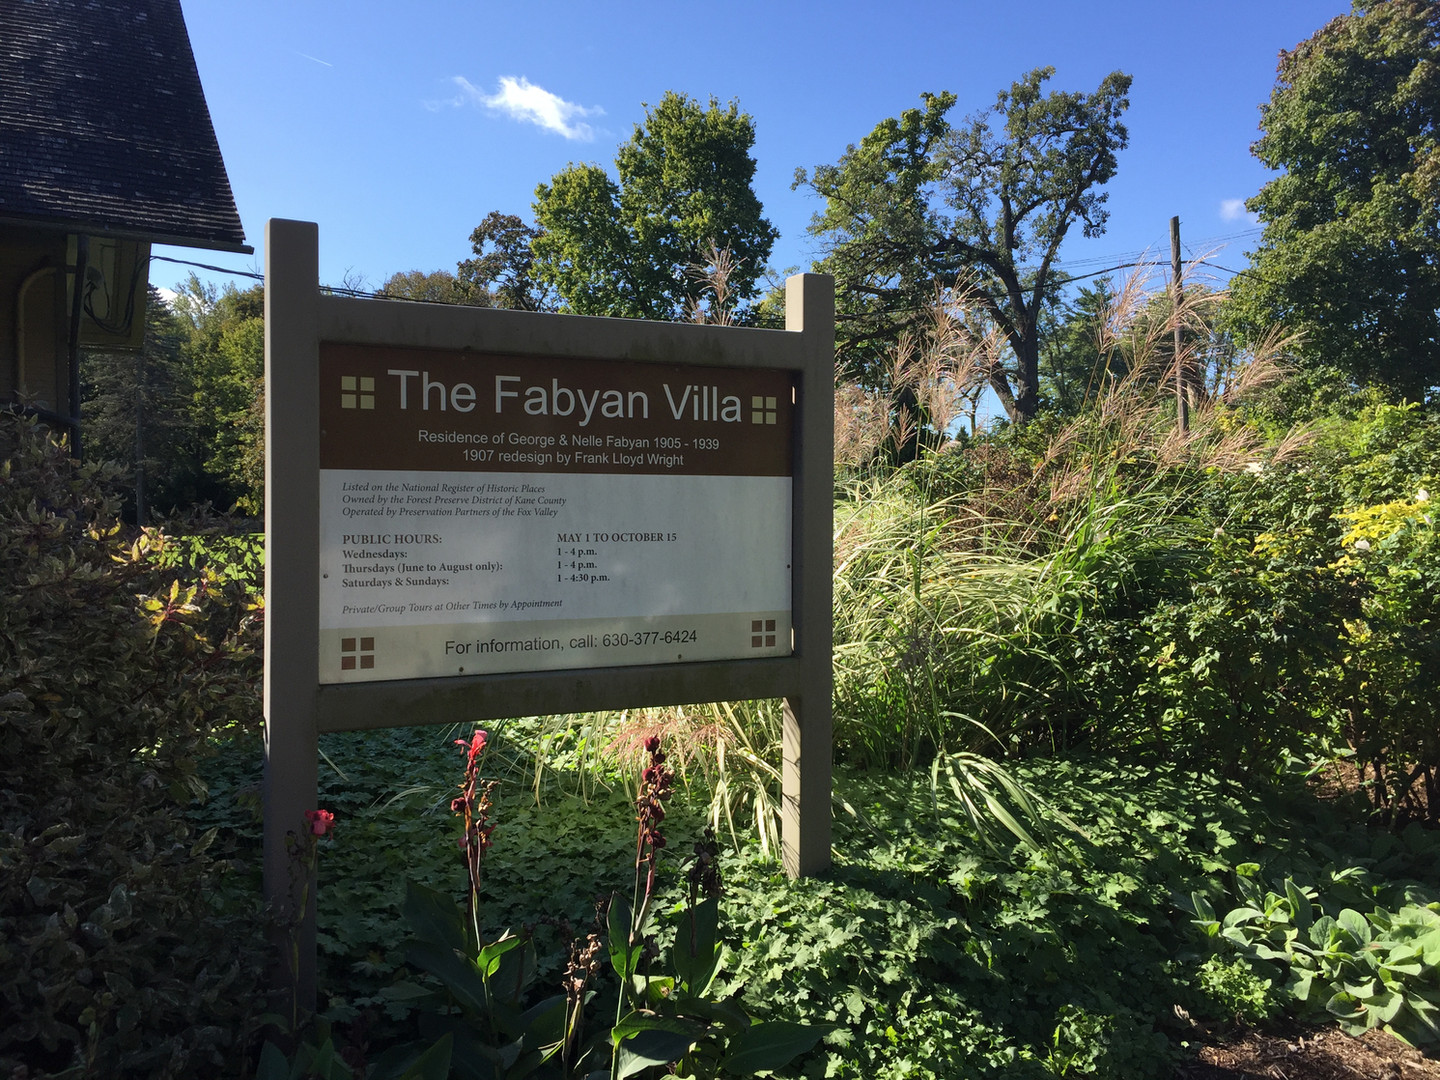 The Fabyan Villa & Japanese Gardens